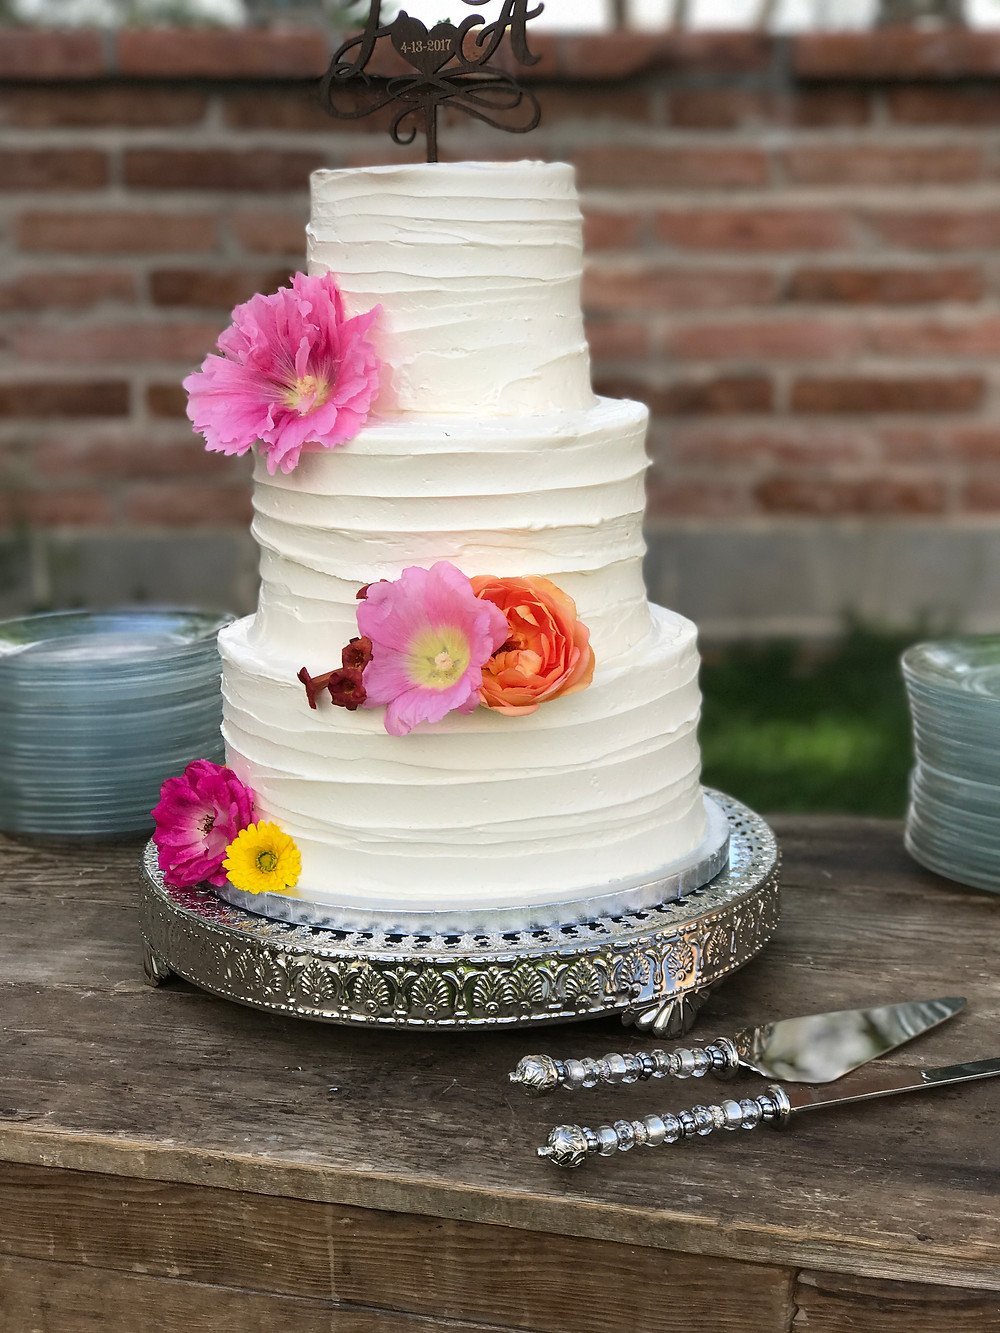 Wedding cake decorated with flowers from the garden.